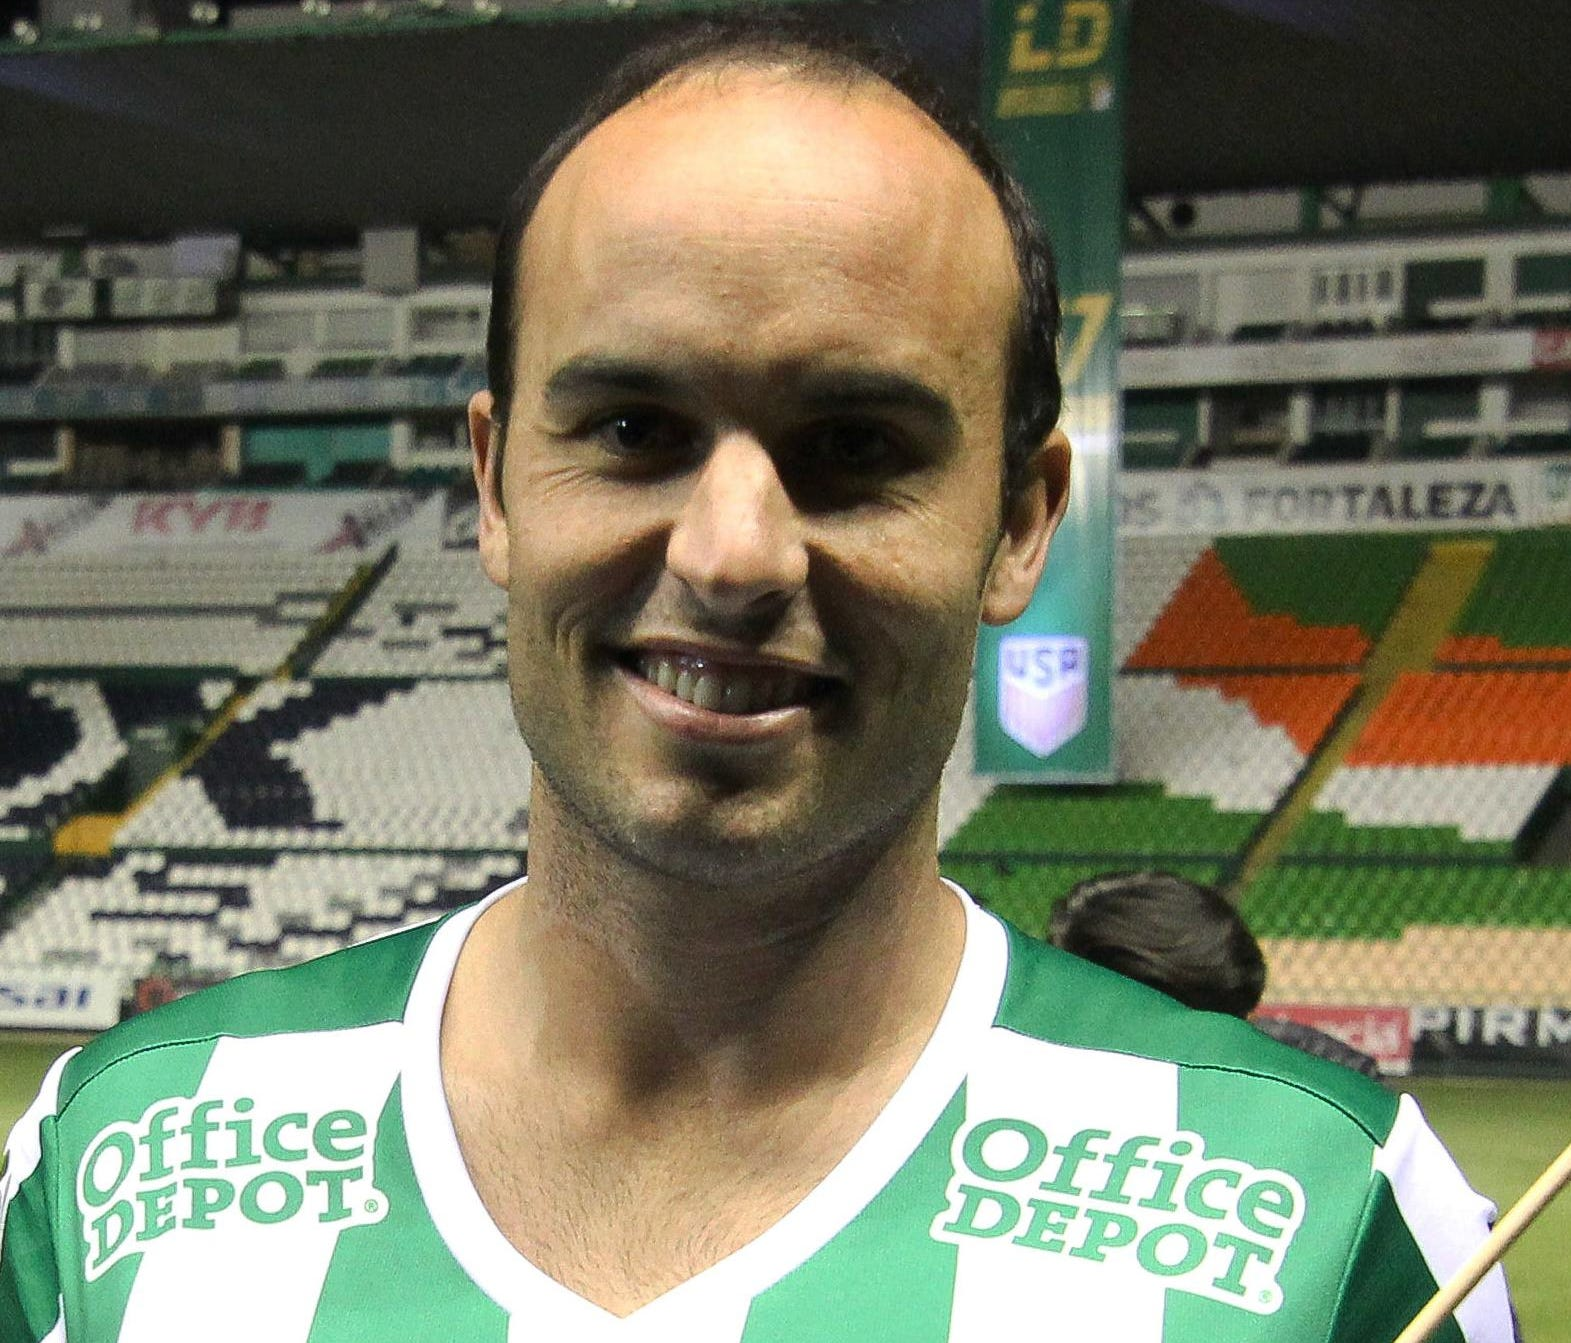 Landon Donovan poses with the Leon team's jersey during his official presentation at the Nou Camp stadium on January 15, in Leon, Guanajuato state, Mexico.